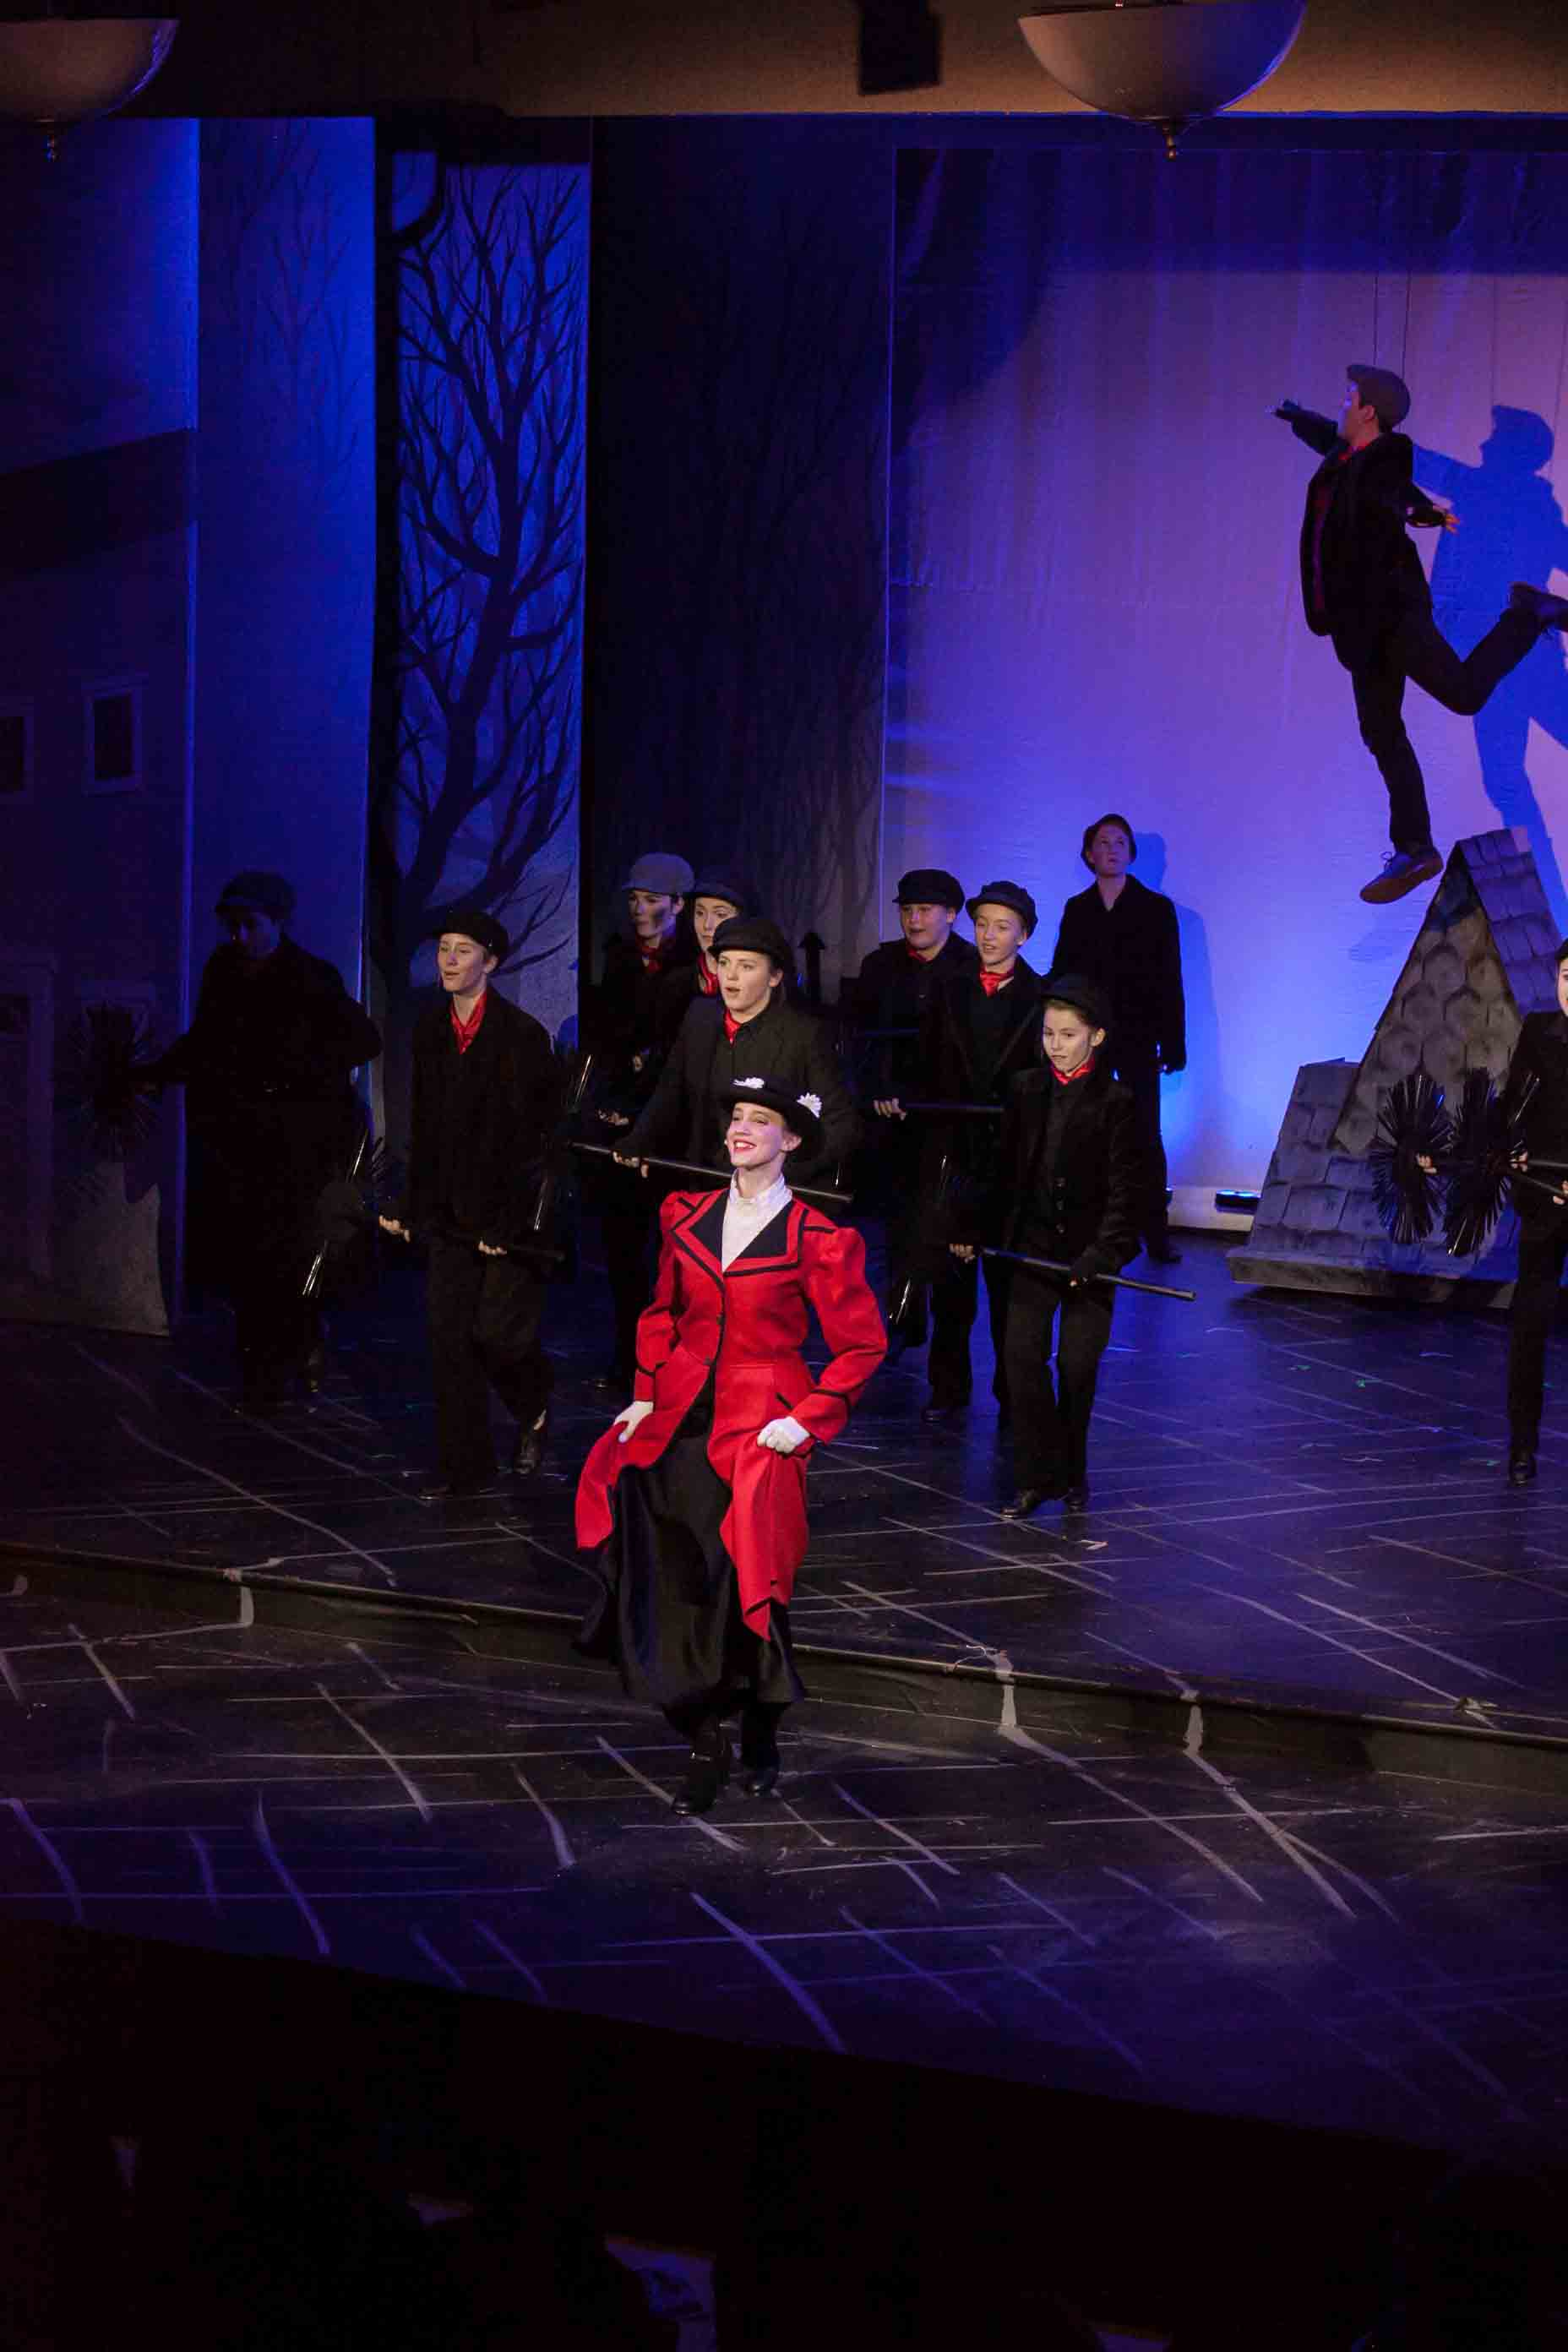 2-4-16 Mary Poppins Proper Cast 0398.jpg